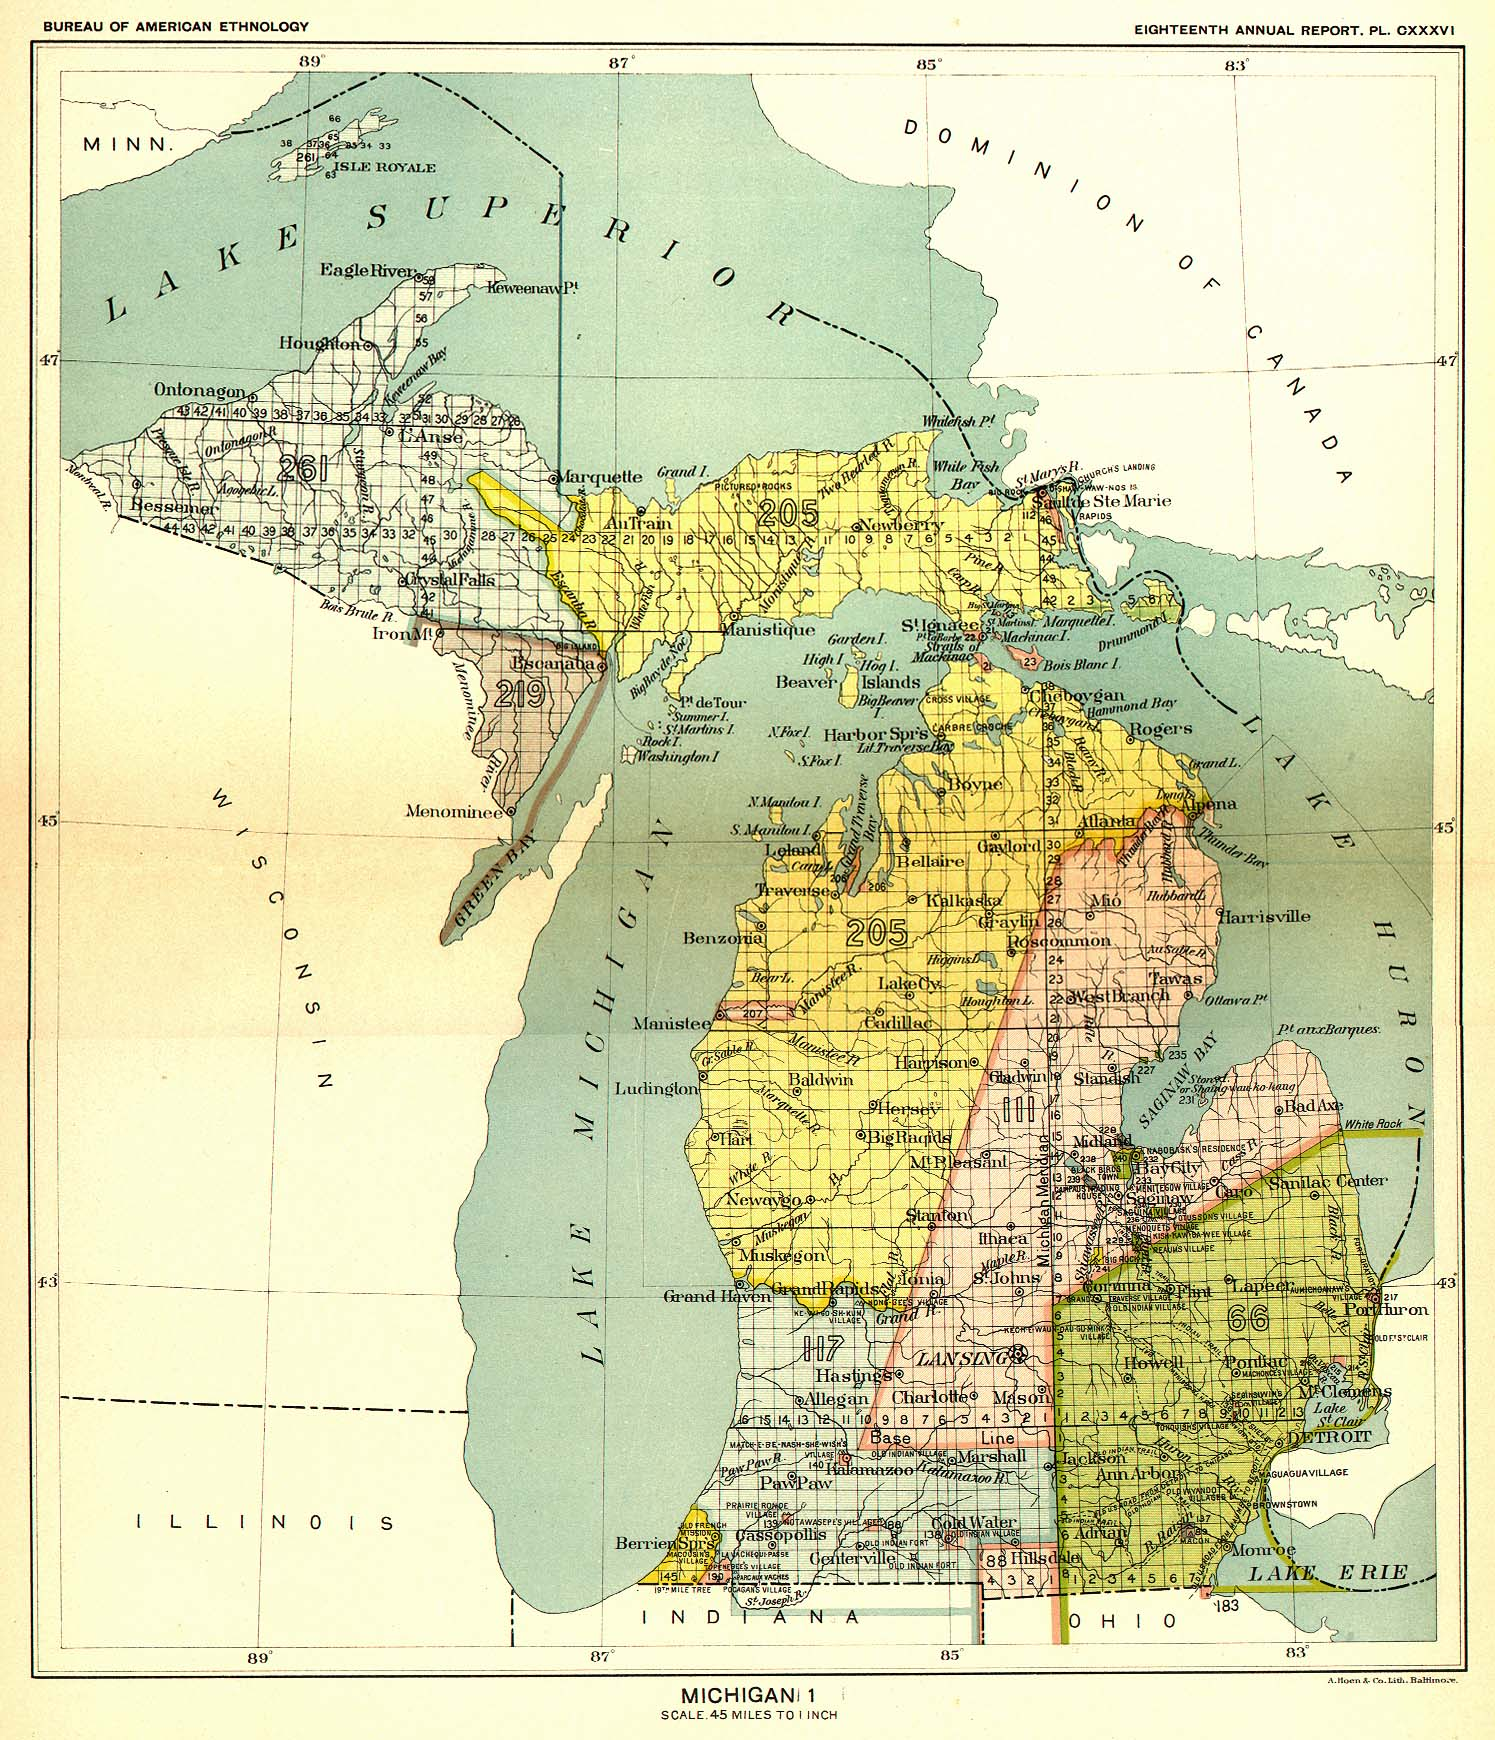 Indian Land Cessions In The U S Michigan Map United - Map of indian lands in the us